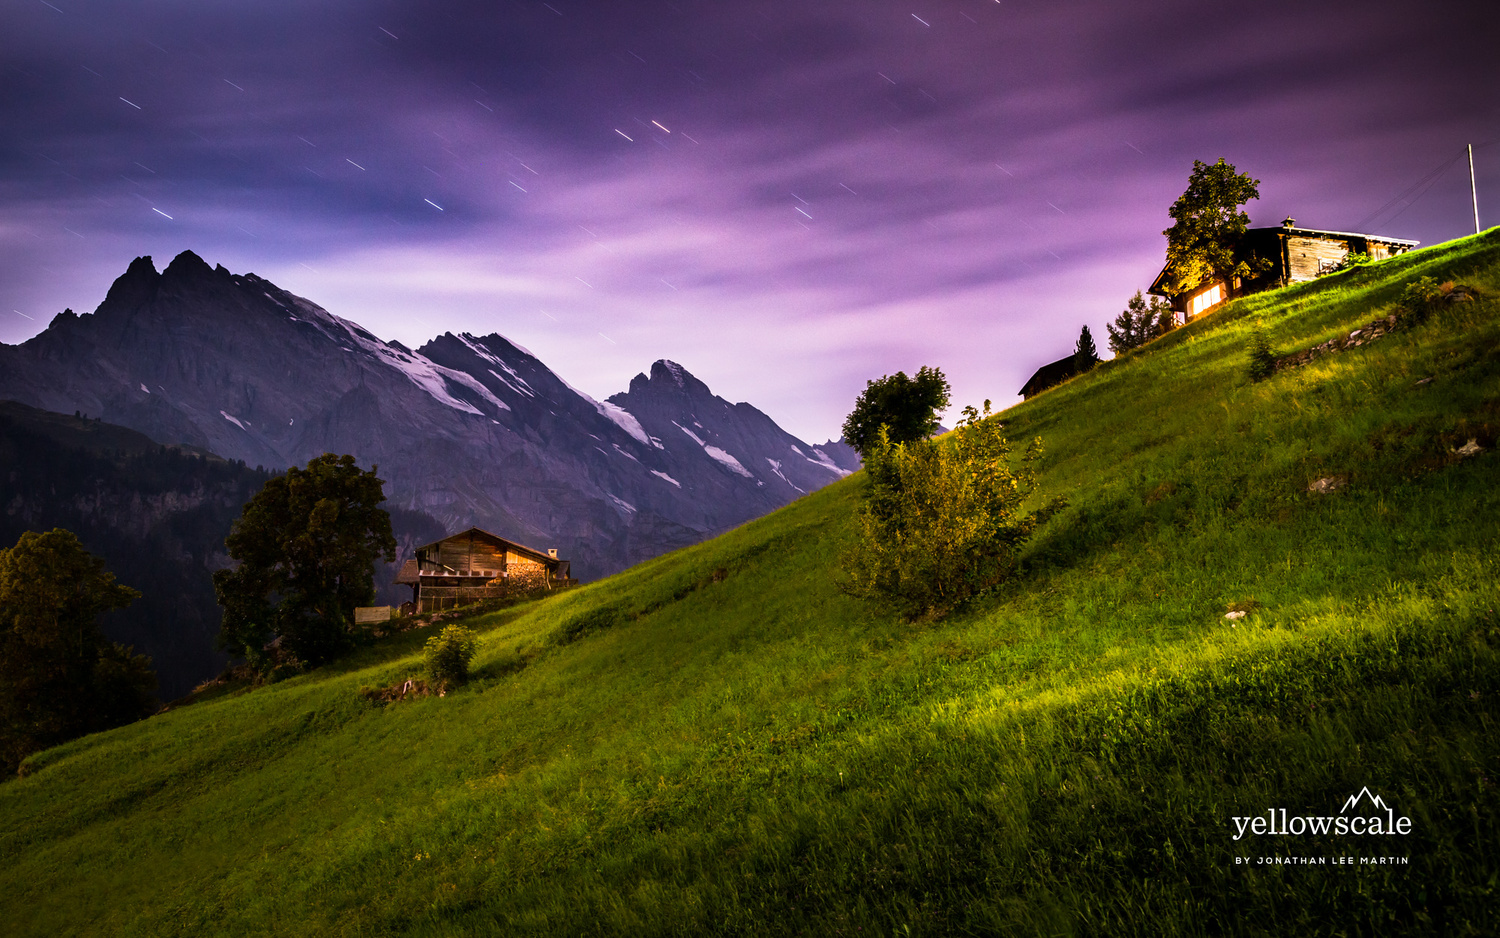 Star Trails above Gimmelwald by Jonathan Lee Martin